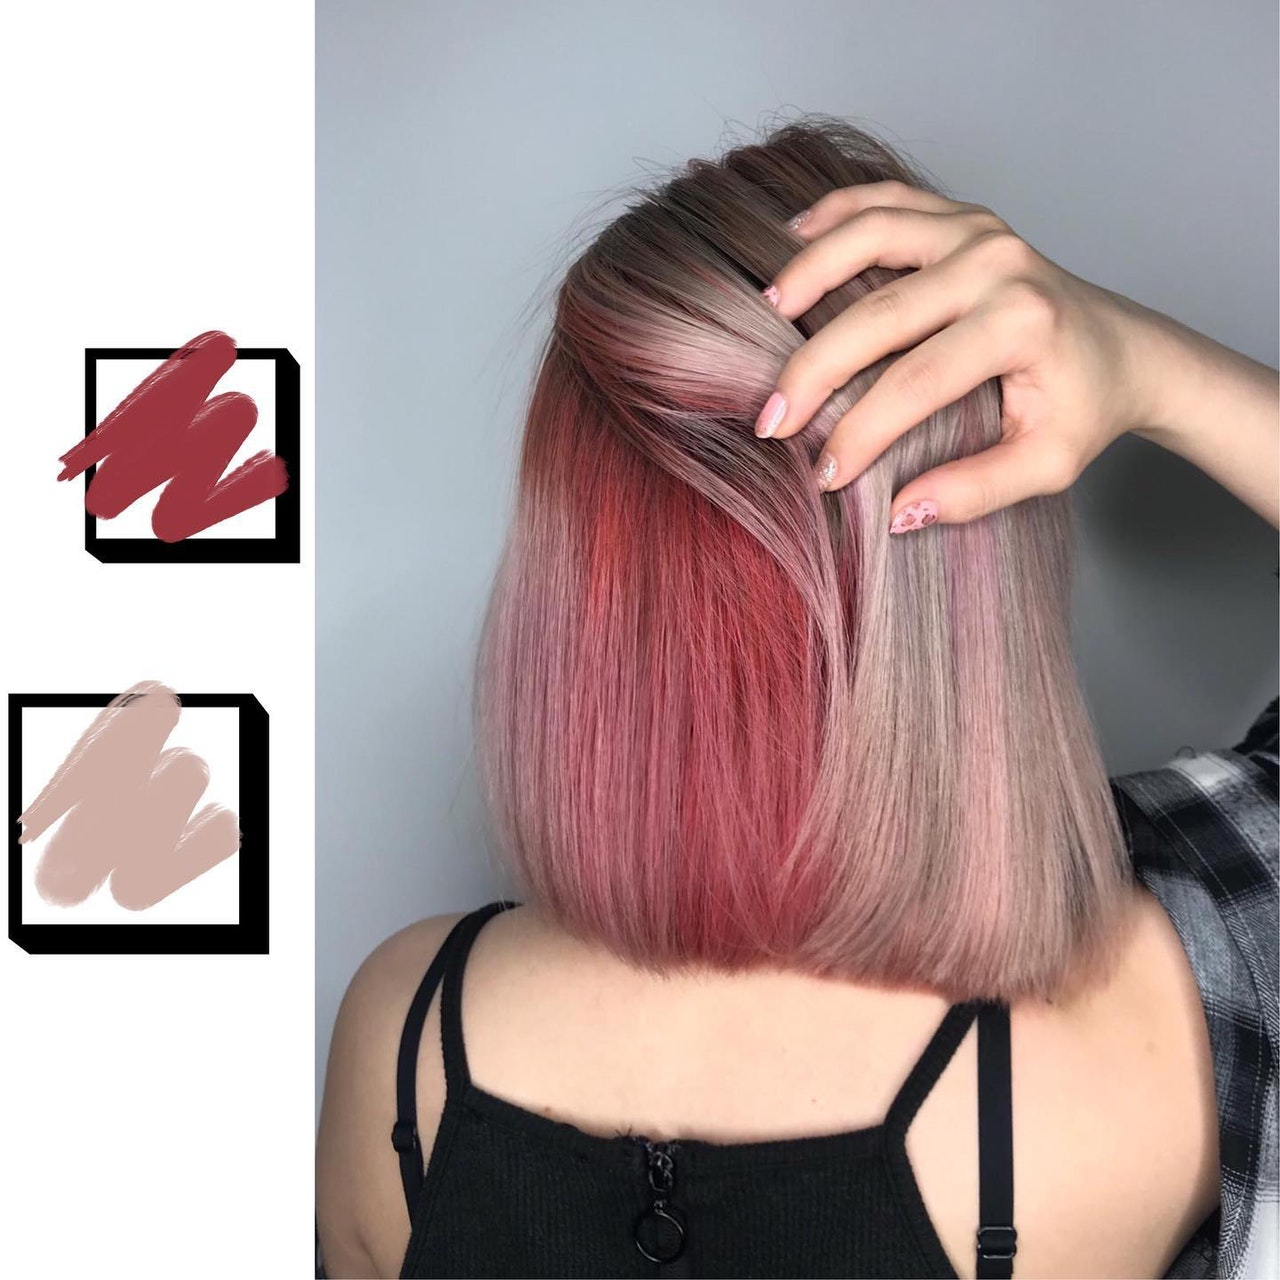 Red Pink Hair Colour by 99 Percent Hair Studio